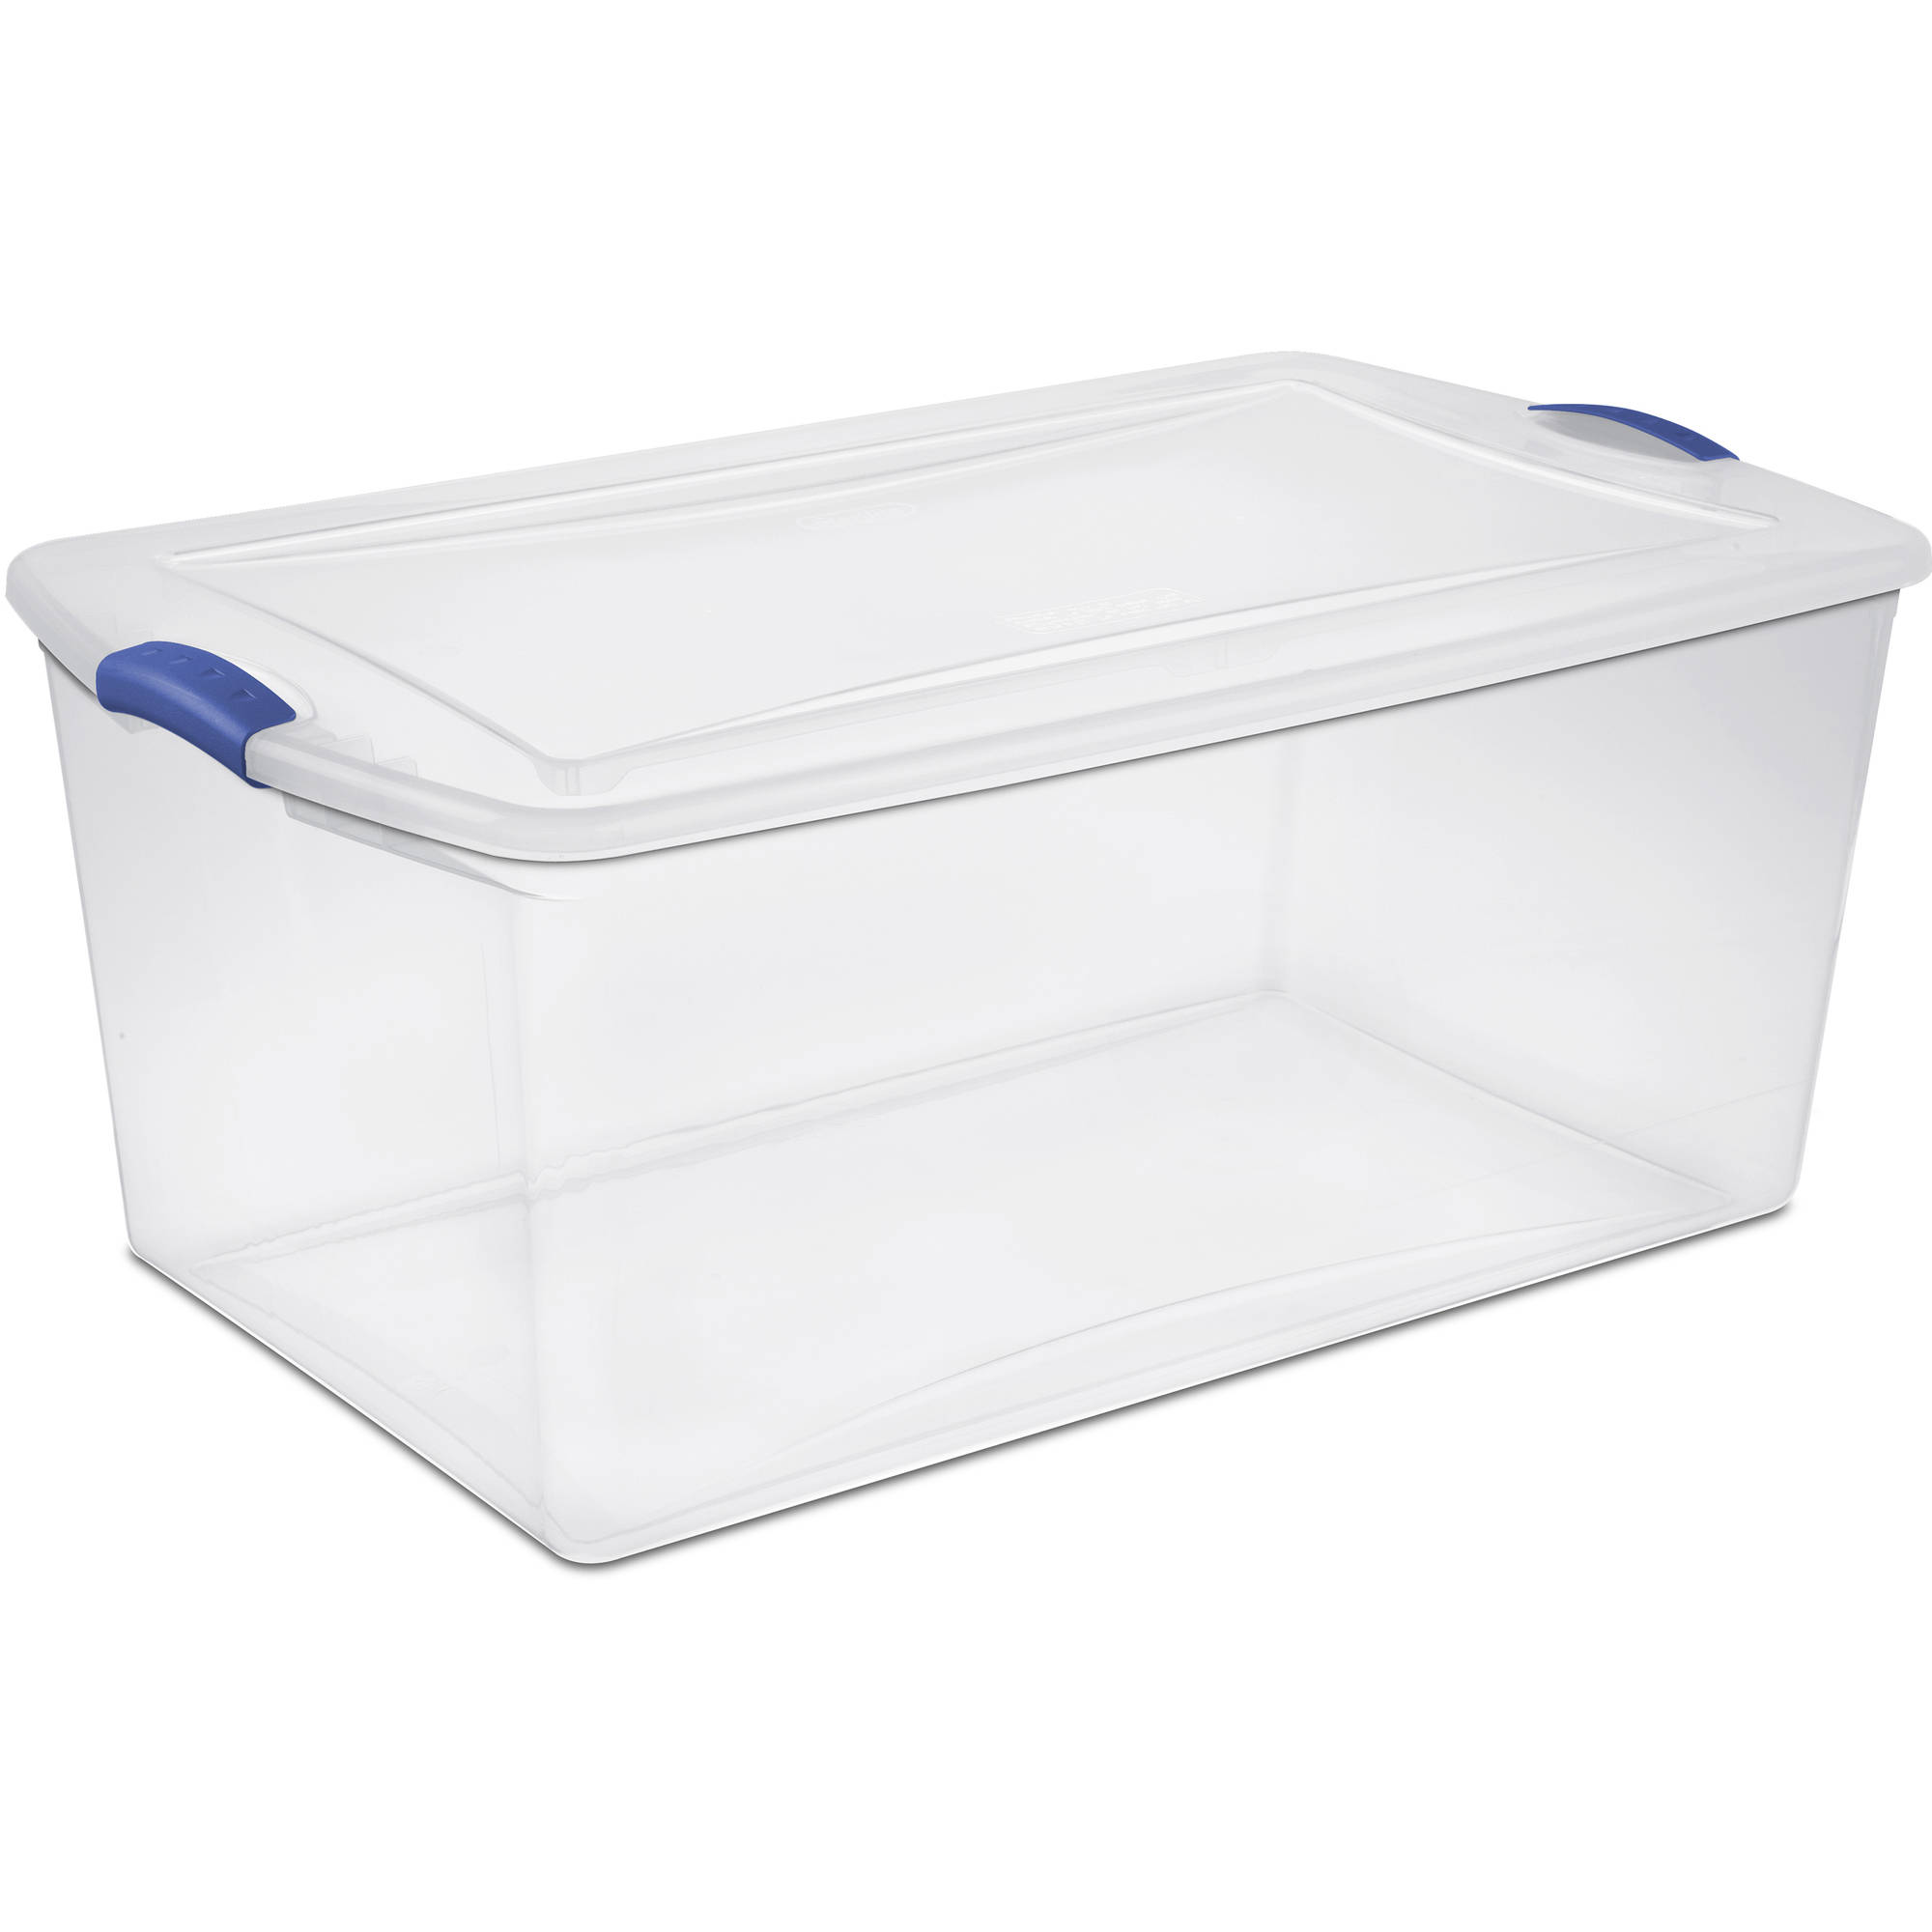 IRIS 169 Qt. Store-It-All Plastic Storage Tote with Handle and Wheels Black - Walmart.com  sc 1 st  Walmart & IRIS 169 Qt. Store-It-All Plastic Storage Tote with Handle and ...